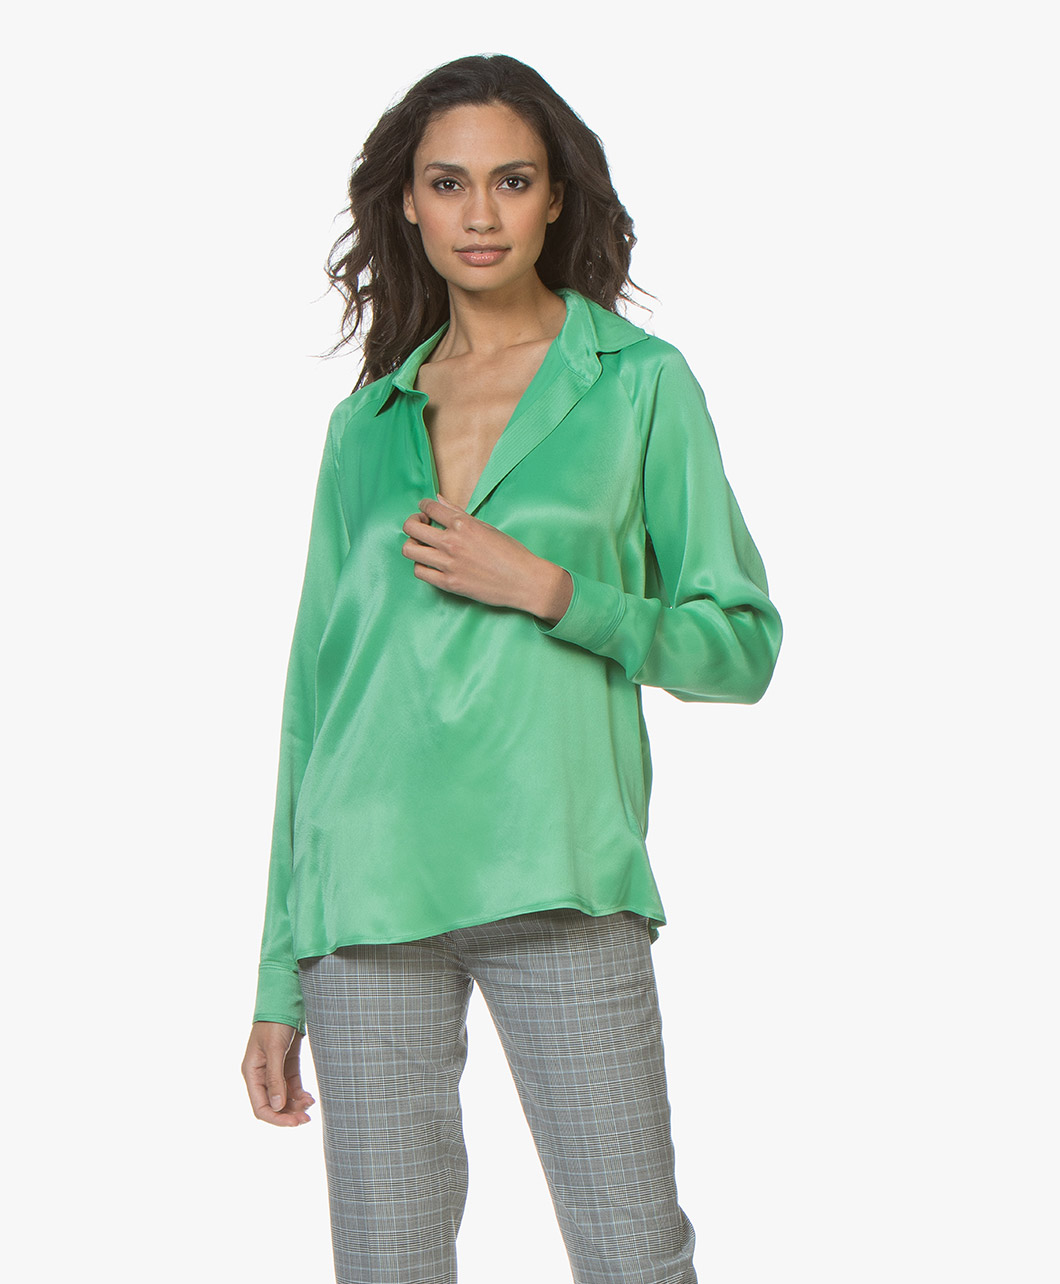 Afbeelding van By Malene Birger Blouse Oliviaa Viscose V hals in Greenbriar